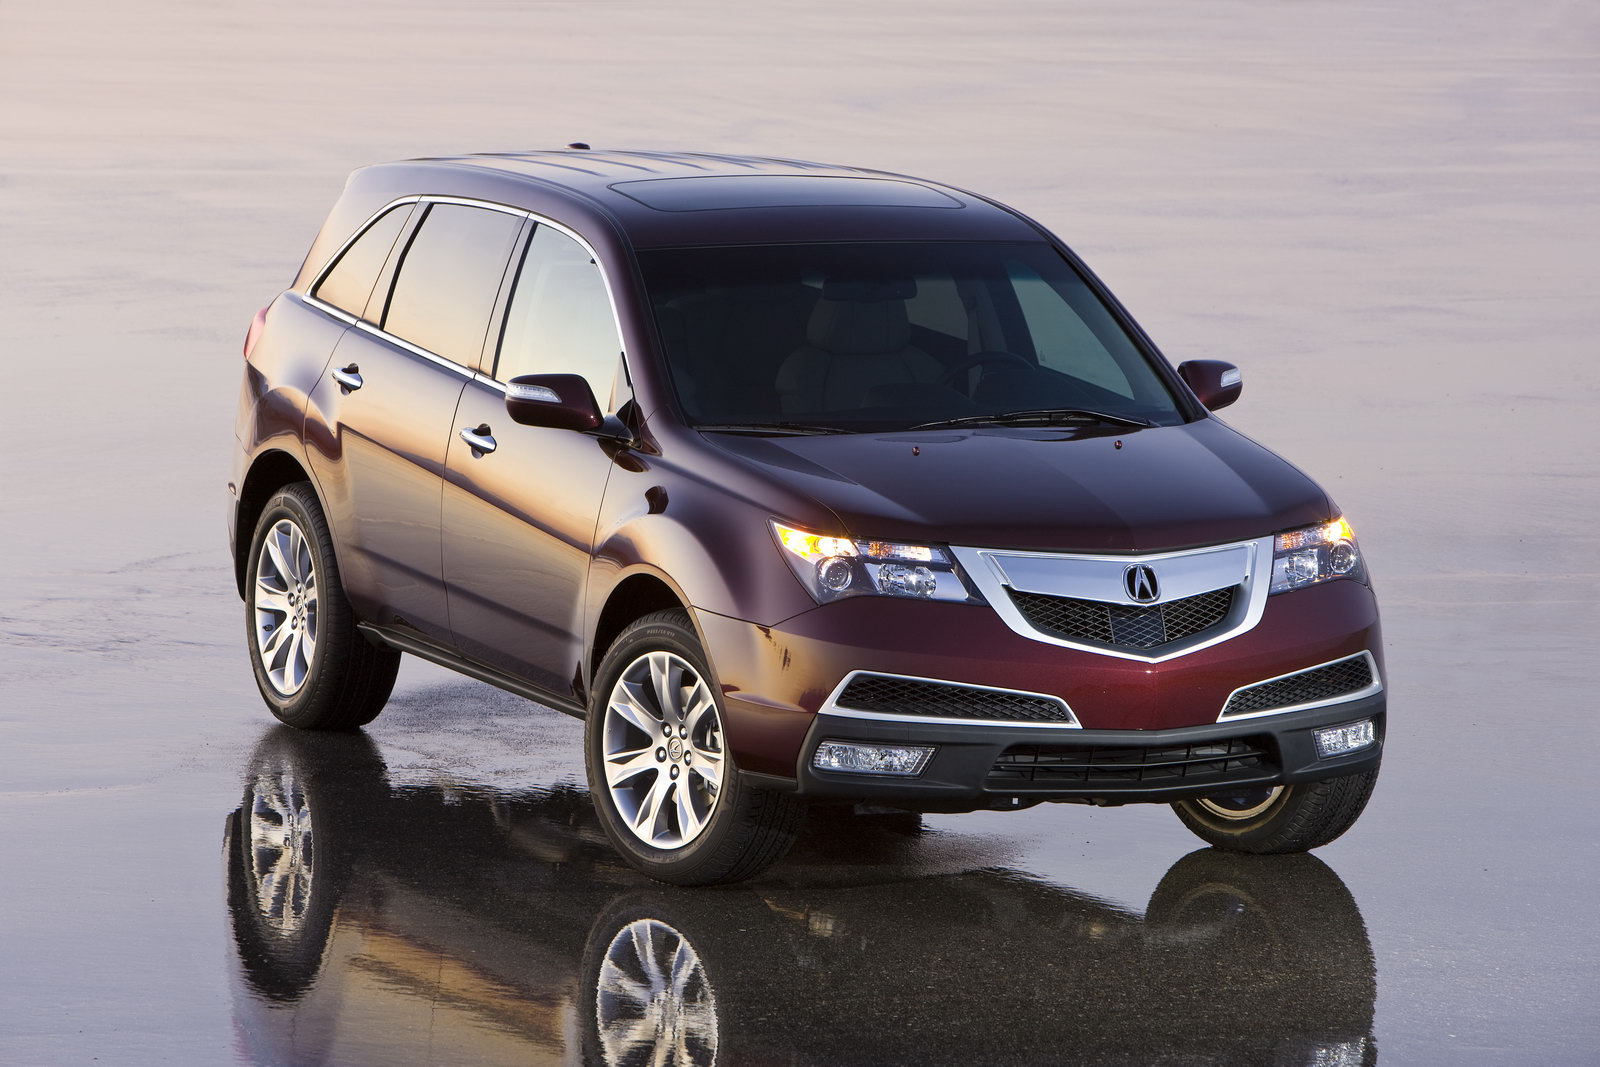 2010 Acura MDX 1 Mildly Facelifted 2010 Acura MDX Priced from $43,040 in the States